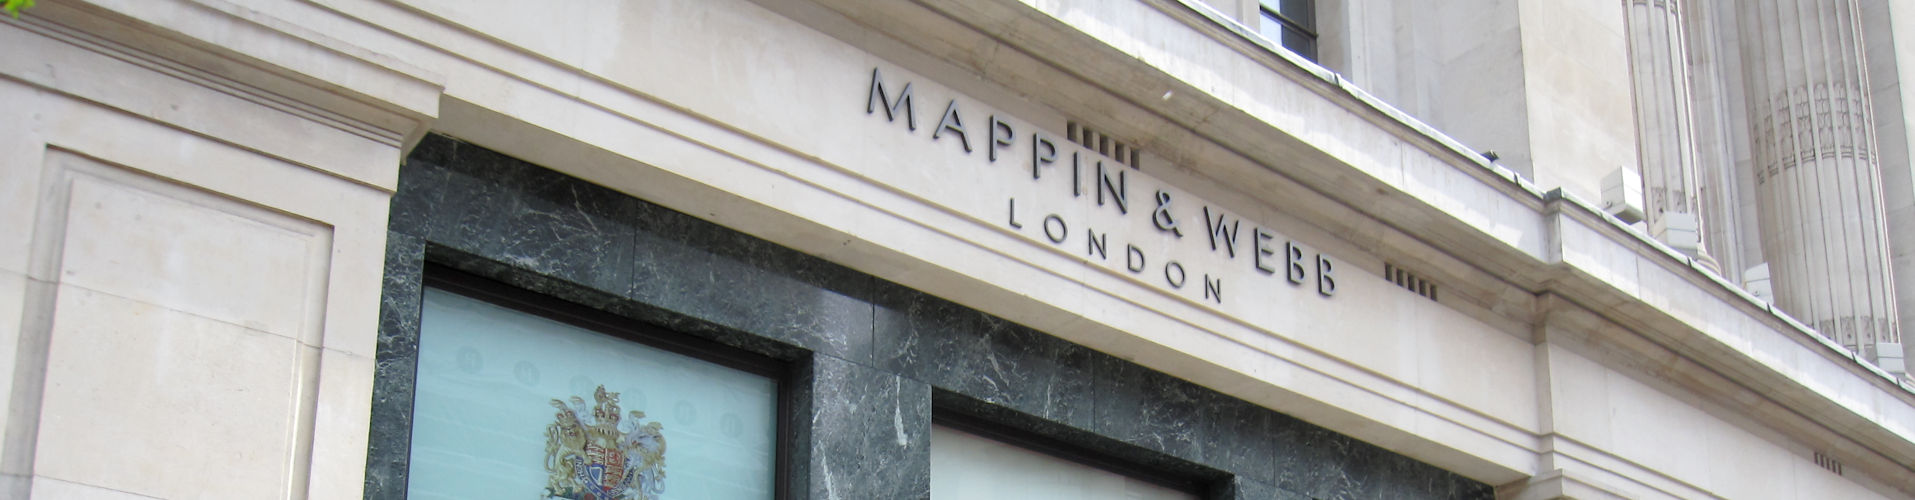 Mappin & Webb Banner